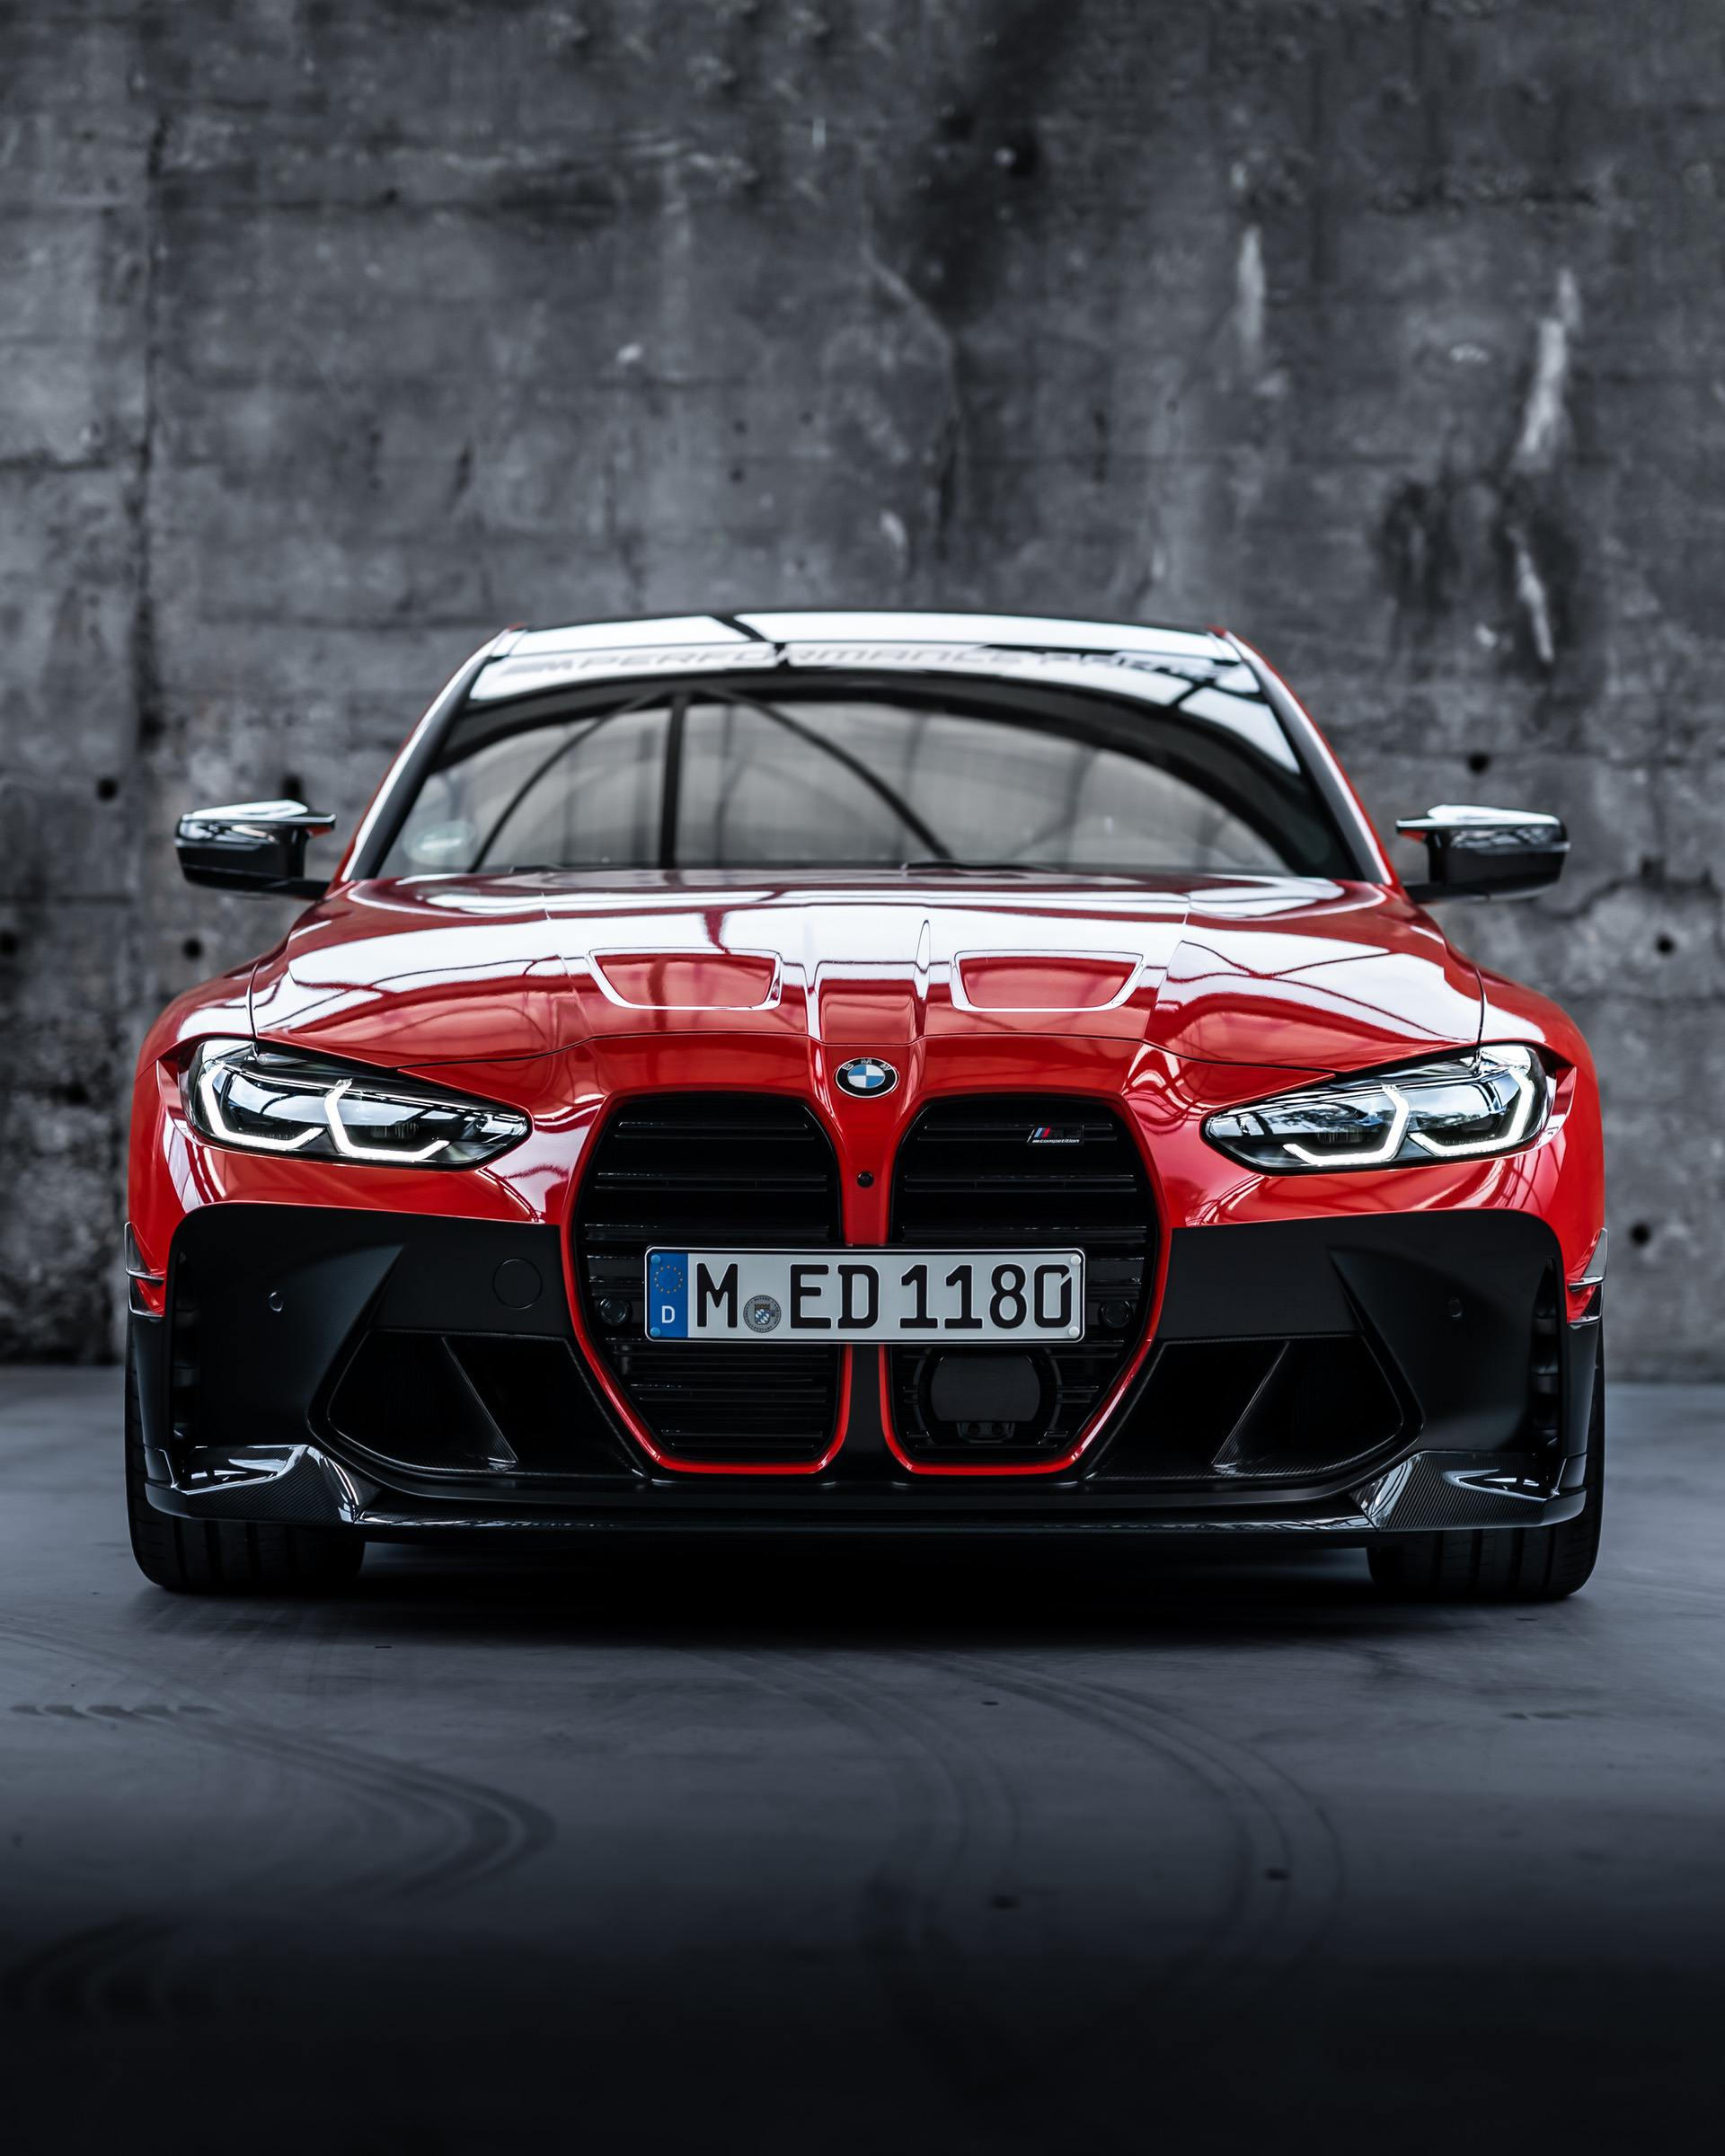 2021 BMW M3 with M Performance Parts A New Photo Gallery 1920x2400